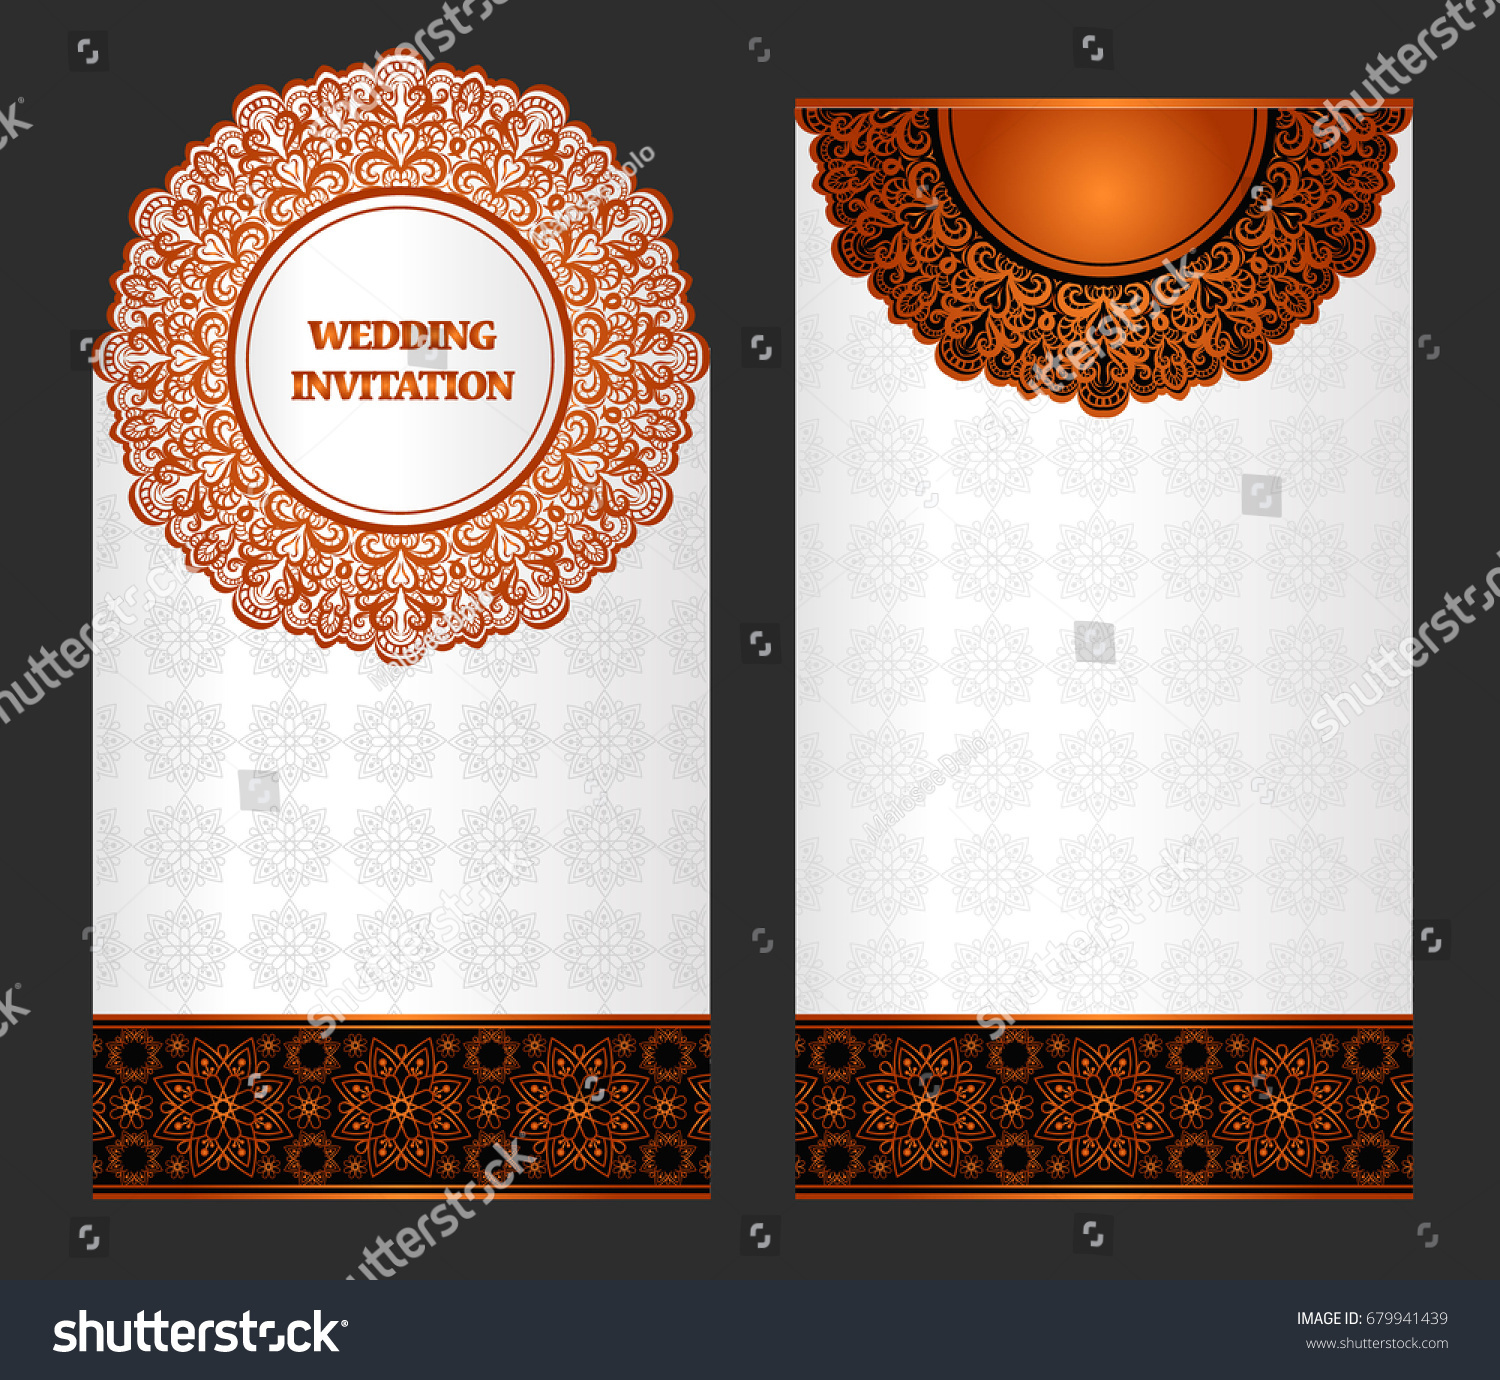 https www shutterstock com image vector wedding invitation card abstract background islam 679941439